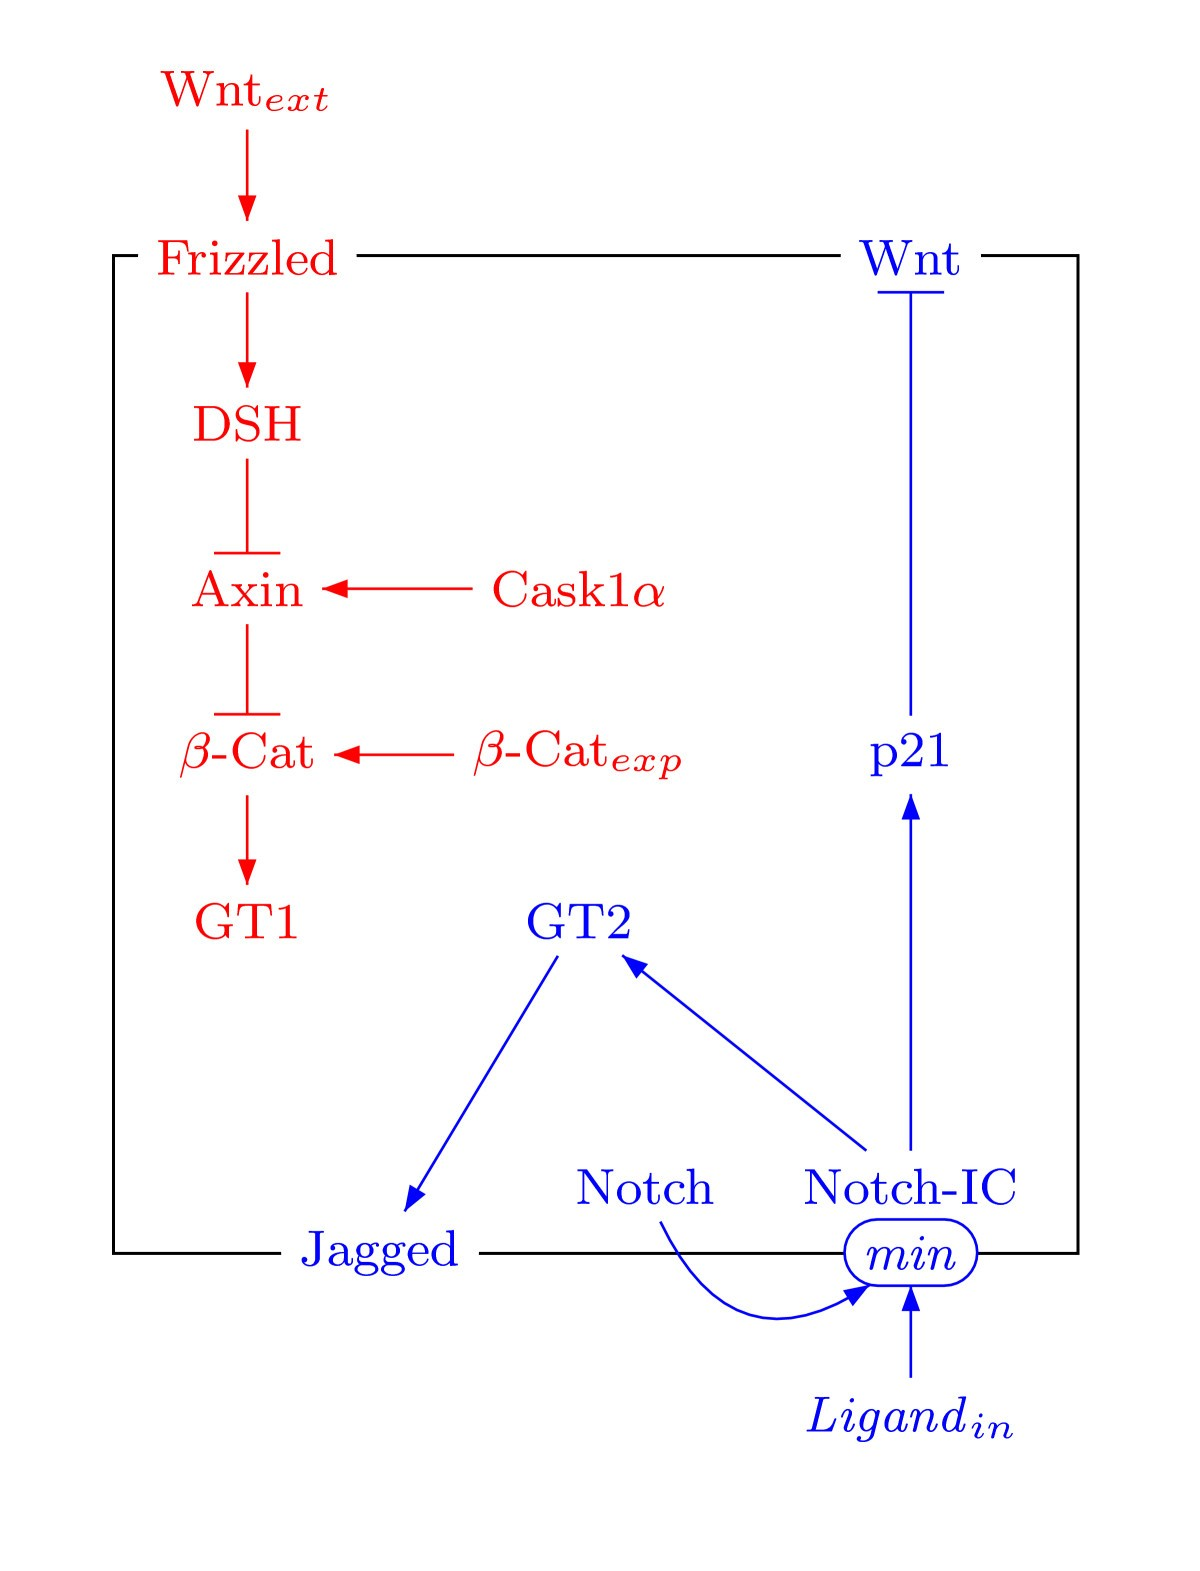 Qualitative Networks A Symbolic Approach To Analyze Biological 543 Cat Engine Diagram Figure 4